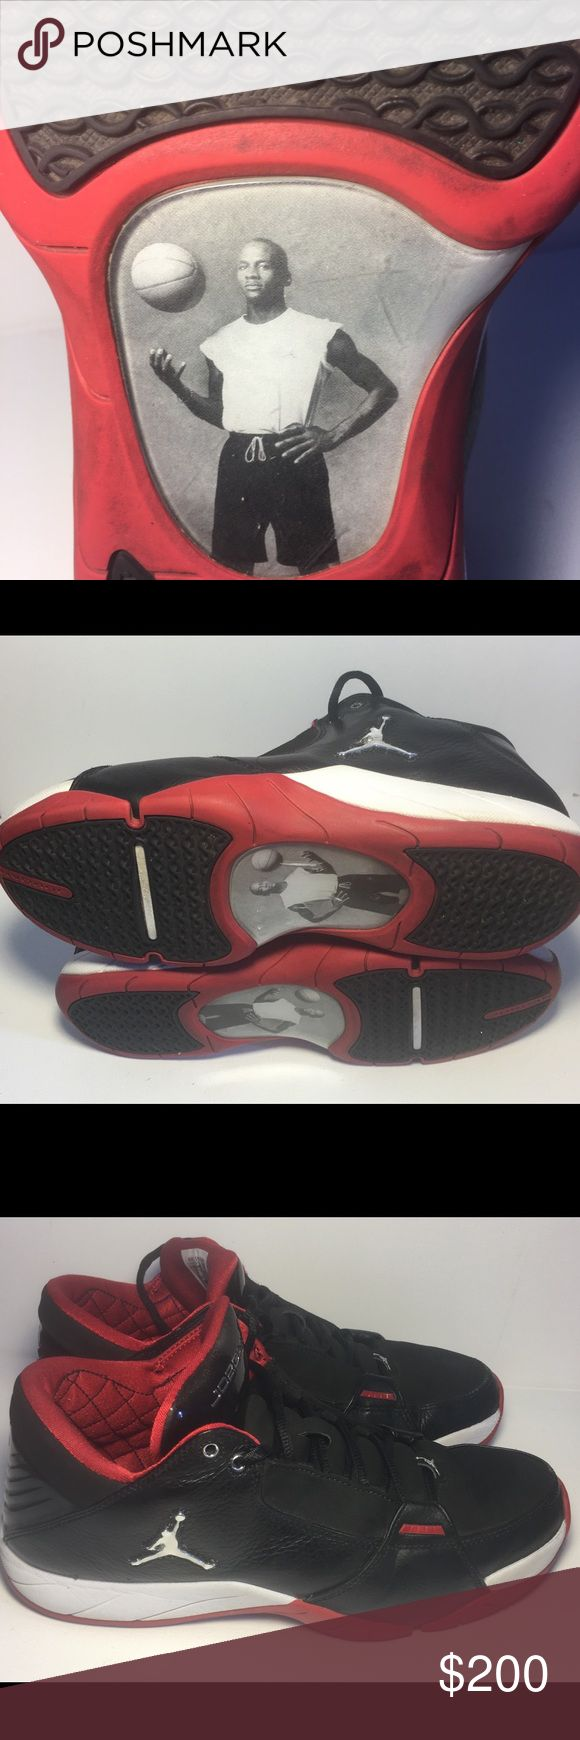 Rare Retro Nike Air Jordan 23 Hoops Low Black/Red Nike Air Jordan 23 Hoops Low Black/Red- Metallic Silver 314312-005 Retroed under the wide popularity and matured technology of Jordan brand,the Air Jordan Hoops Low, which with elegant atmosphere, aroused great attention.Stimulated by Air Jordans,this remarkable not only with classic design concept but also the outstanding performance was regarded as a great masterpiece of Air Jordan Jumpman series. 🏀EUC 🏀 Nike Shoes Athletic Shoes